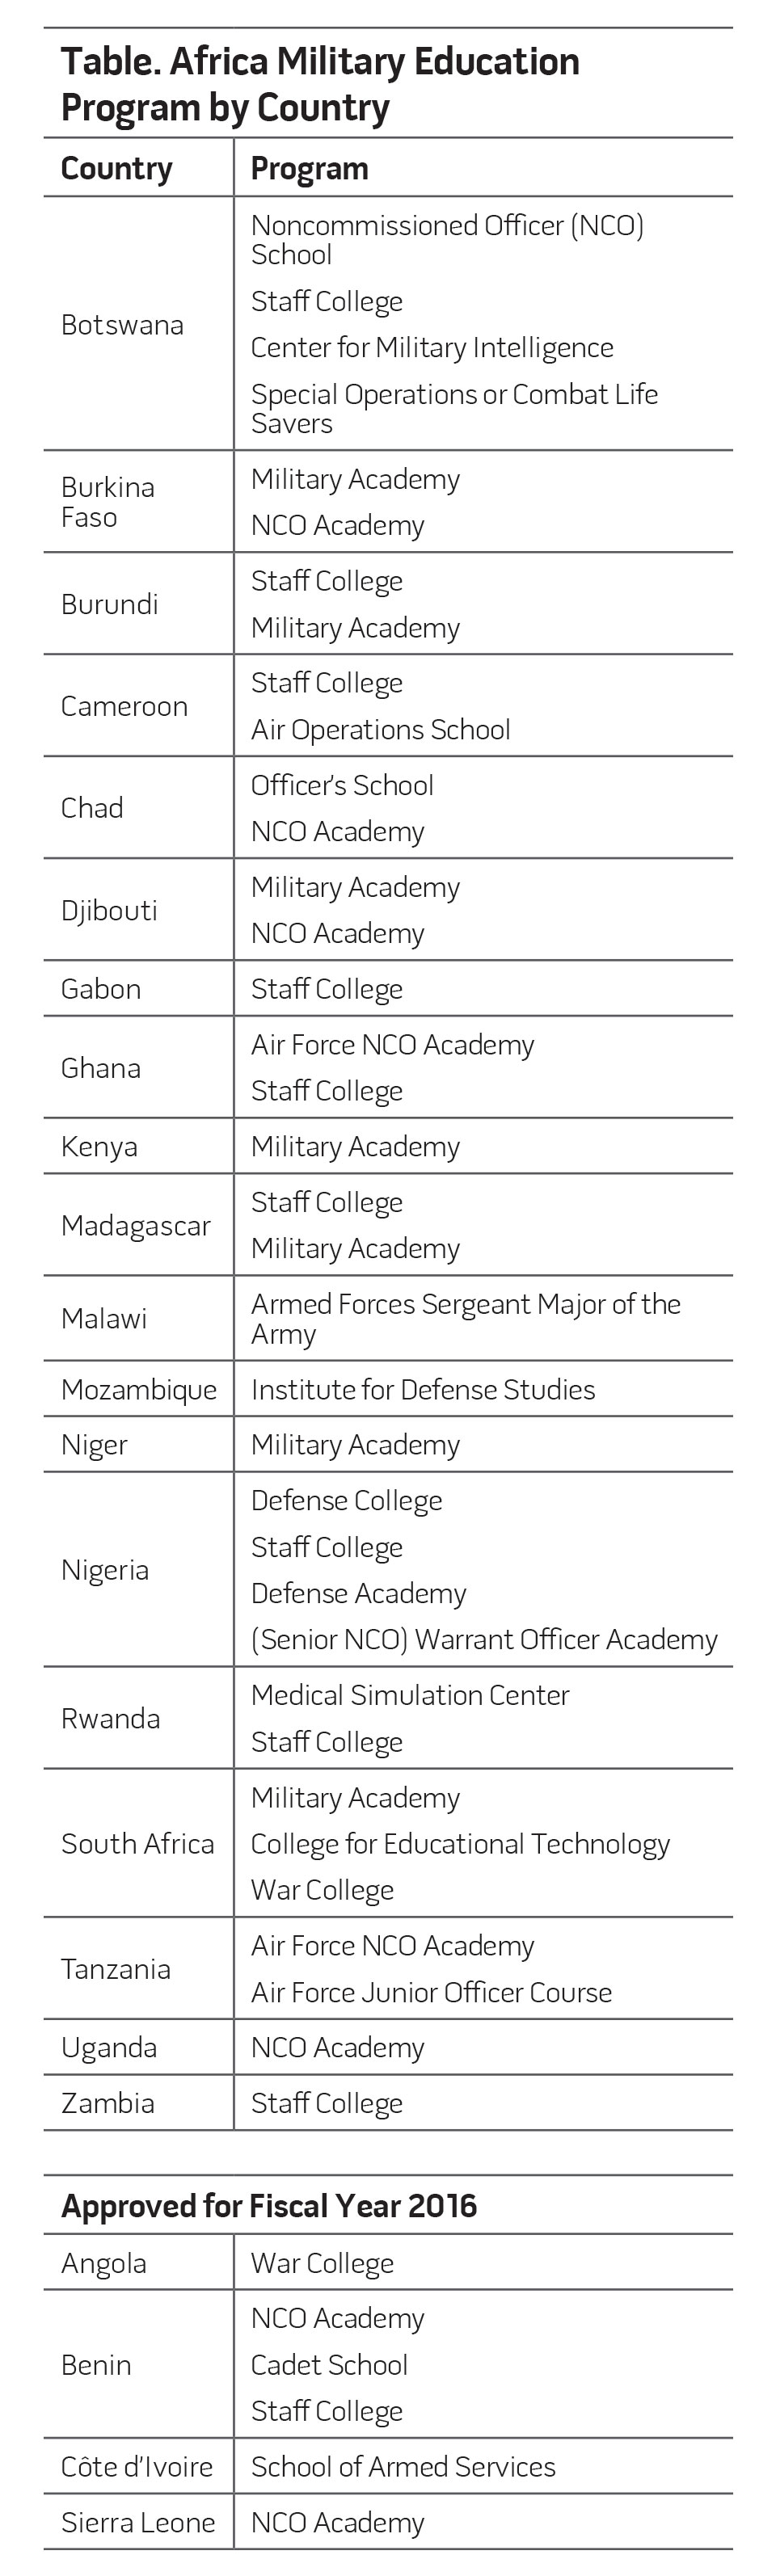 Table. Africa Military Education Program by Country